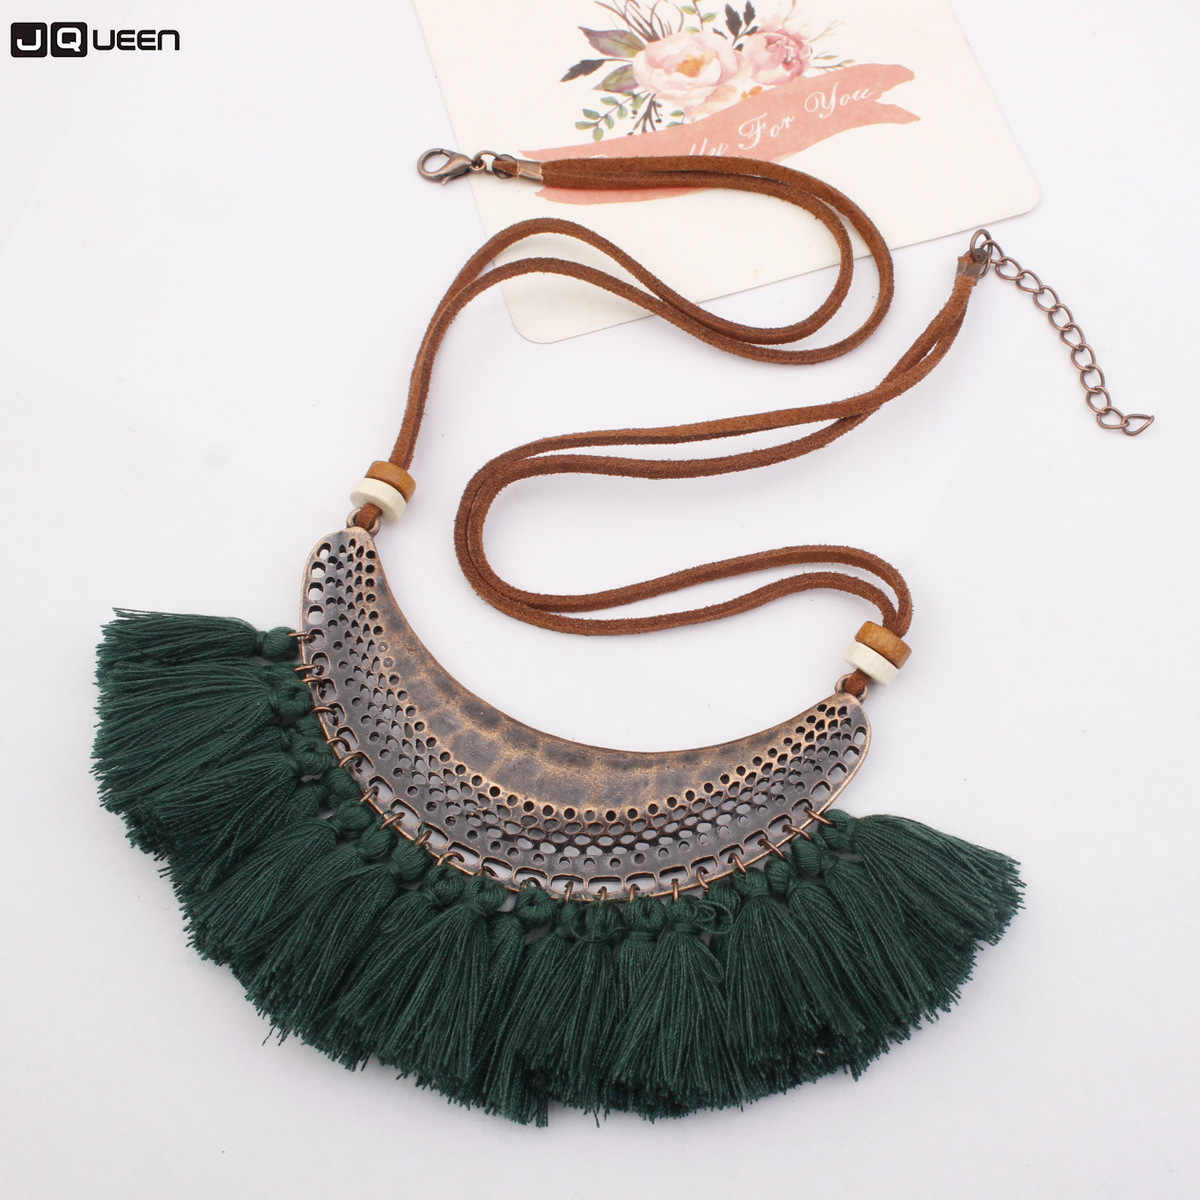 2018 New Alloy Crescent Moon Pendant Necklace Fashion Bohemia Colorful Tassels Sweater Chain Necklace Woman Accessories